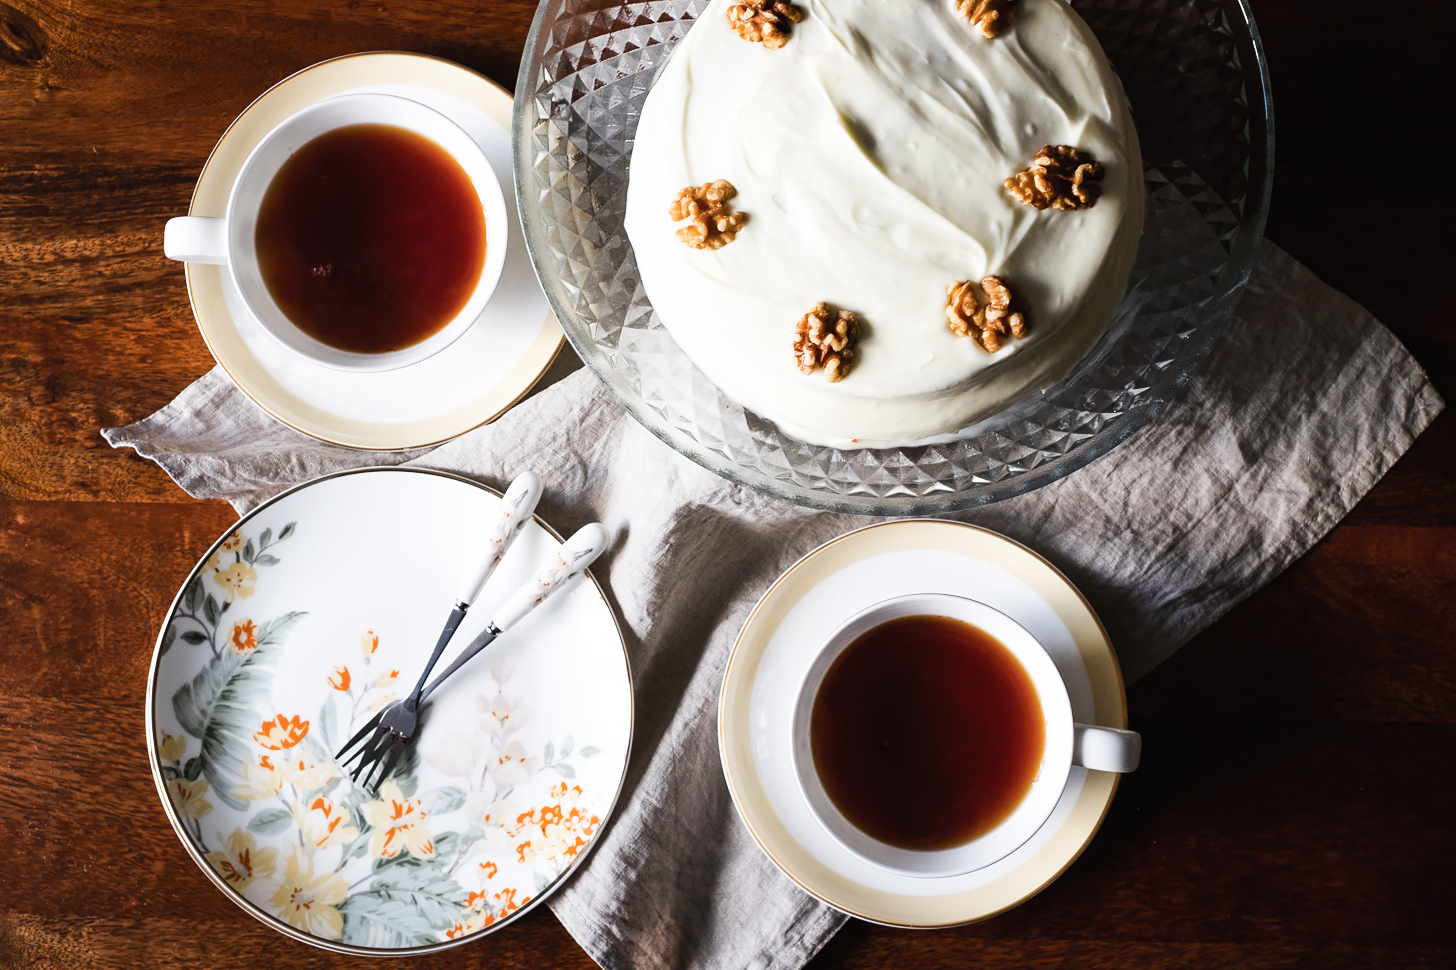 Carrot-Cake-Laura-Ashley-Florentine-1